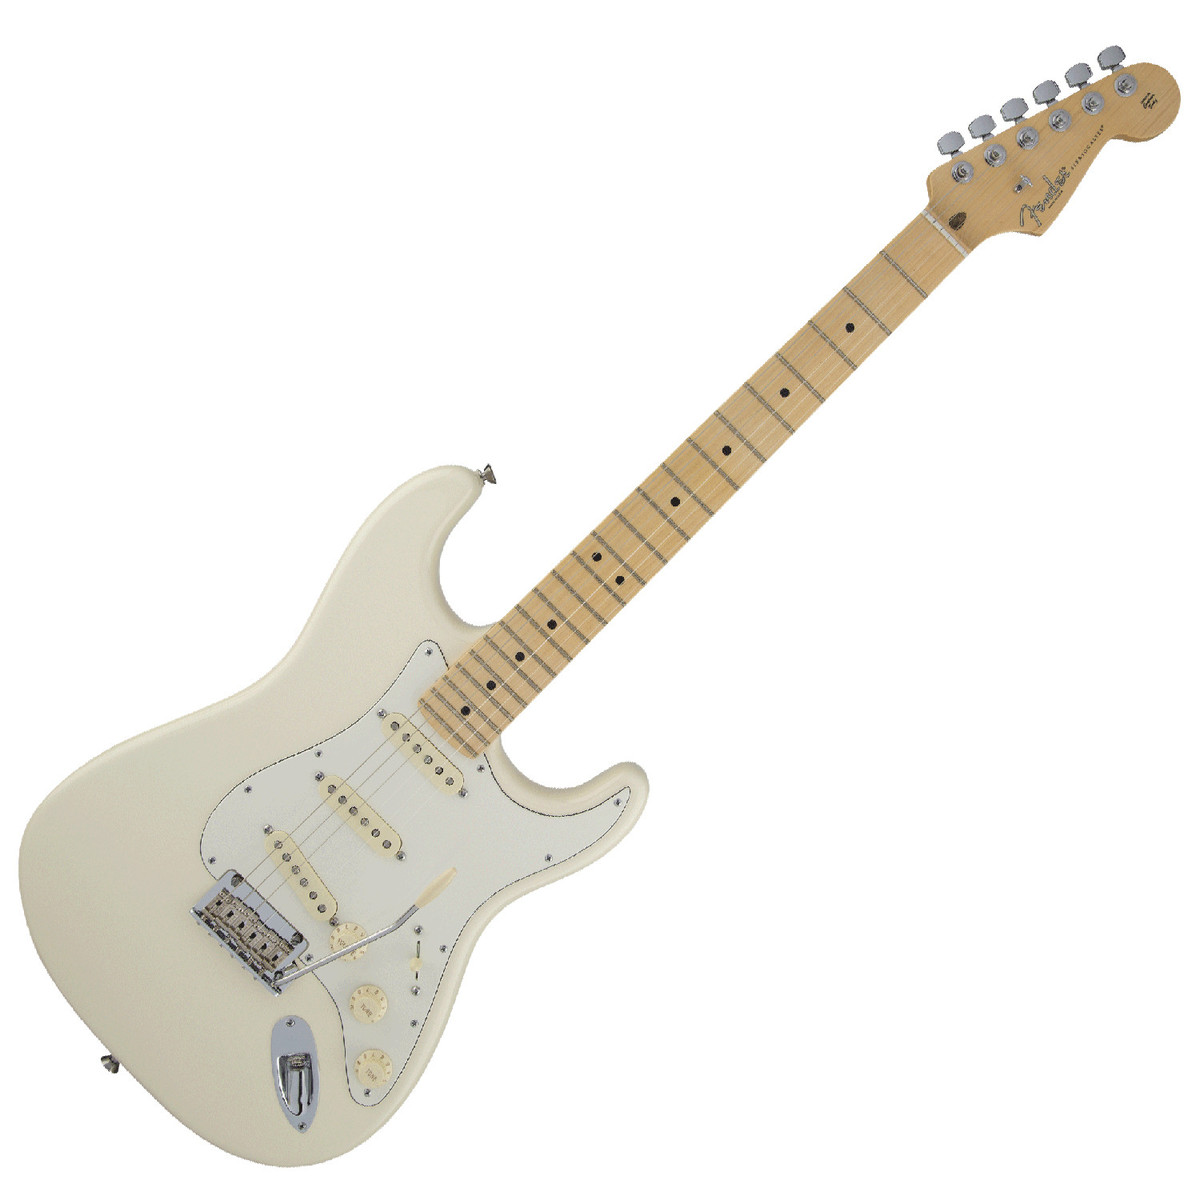 fender american standard stratocaster mn olympic white at gear4music. Black Bedroom Furniture Sets. Home Design Ideas